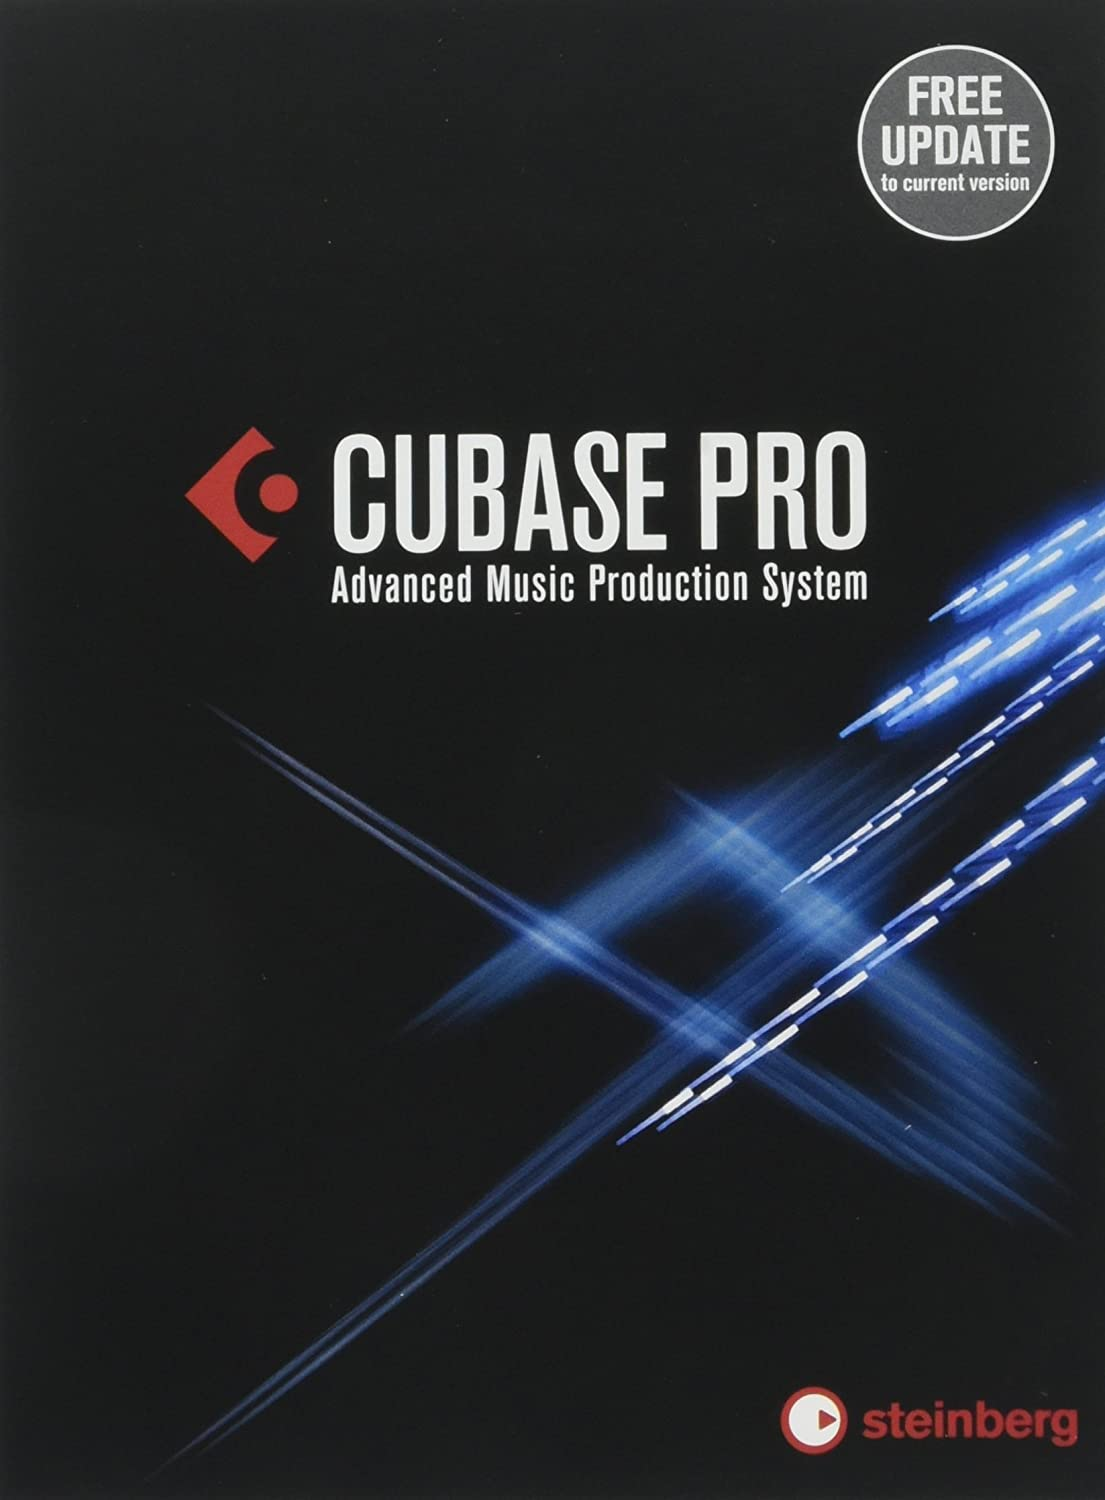 Steinberg Cubase Pro 9 5 Recording Software (Retail Box Version)